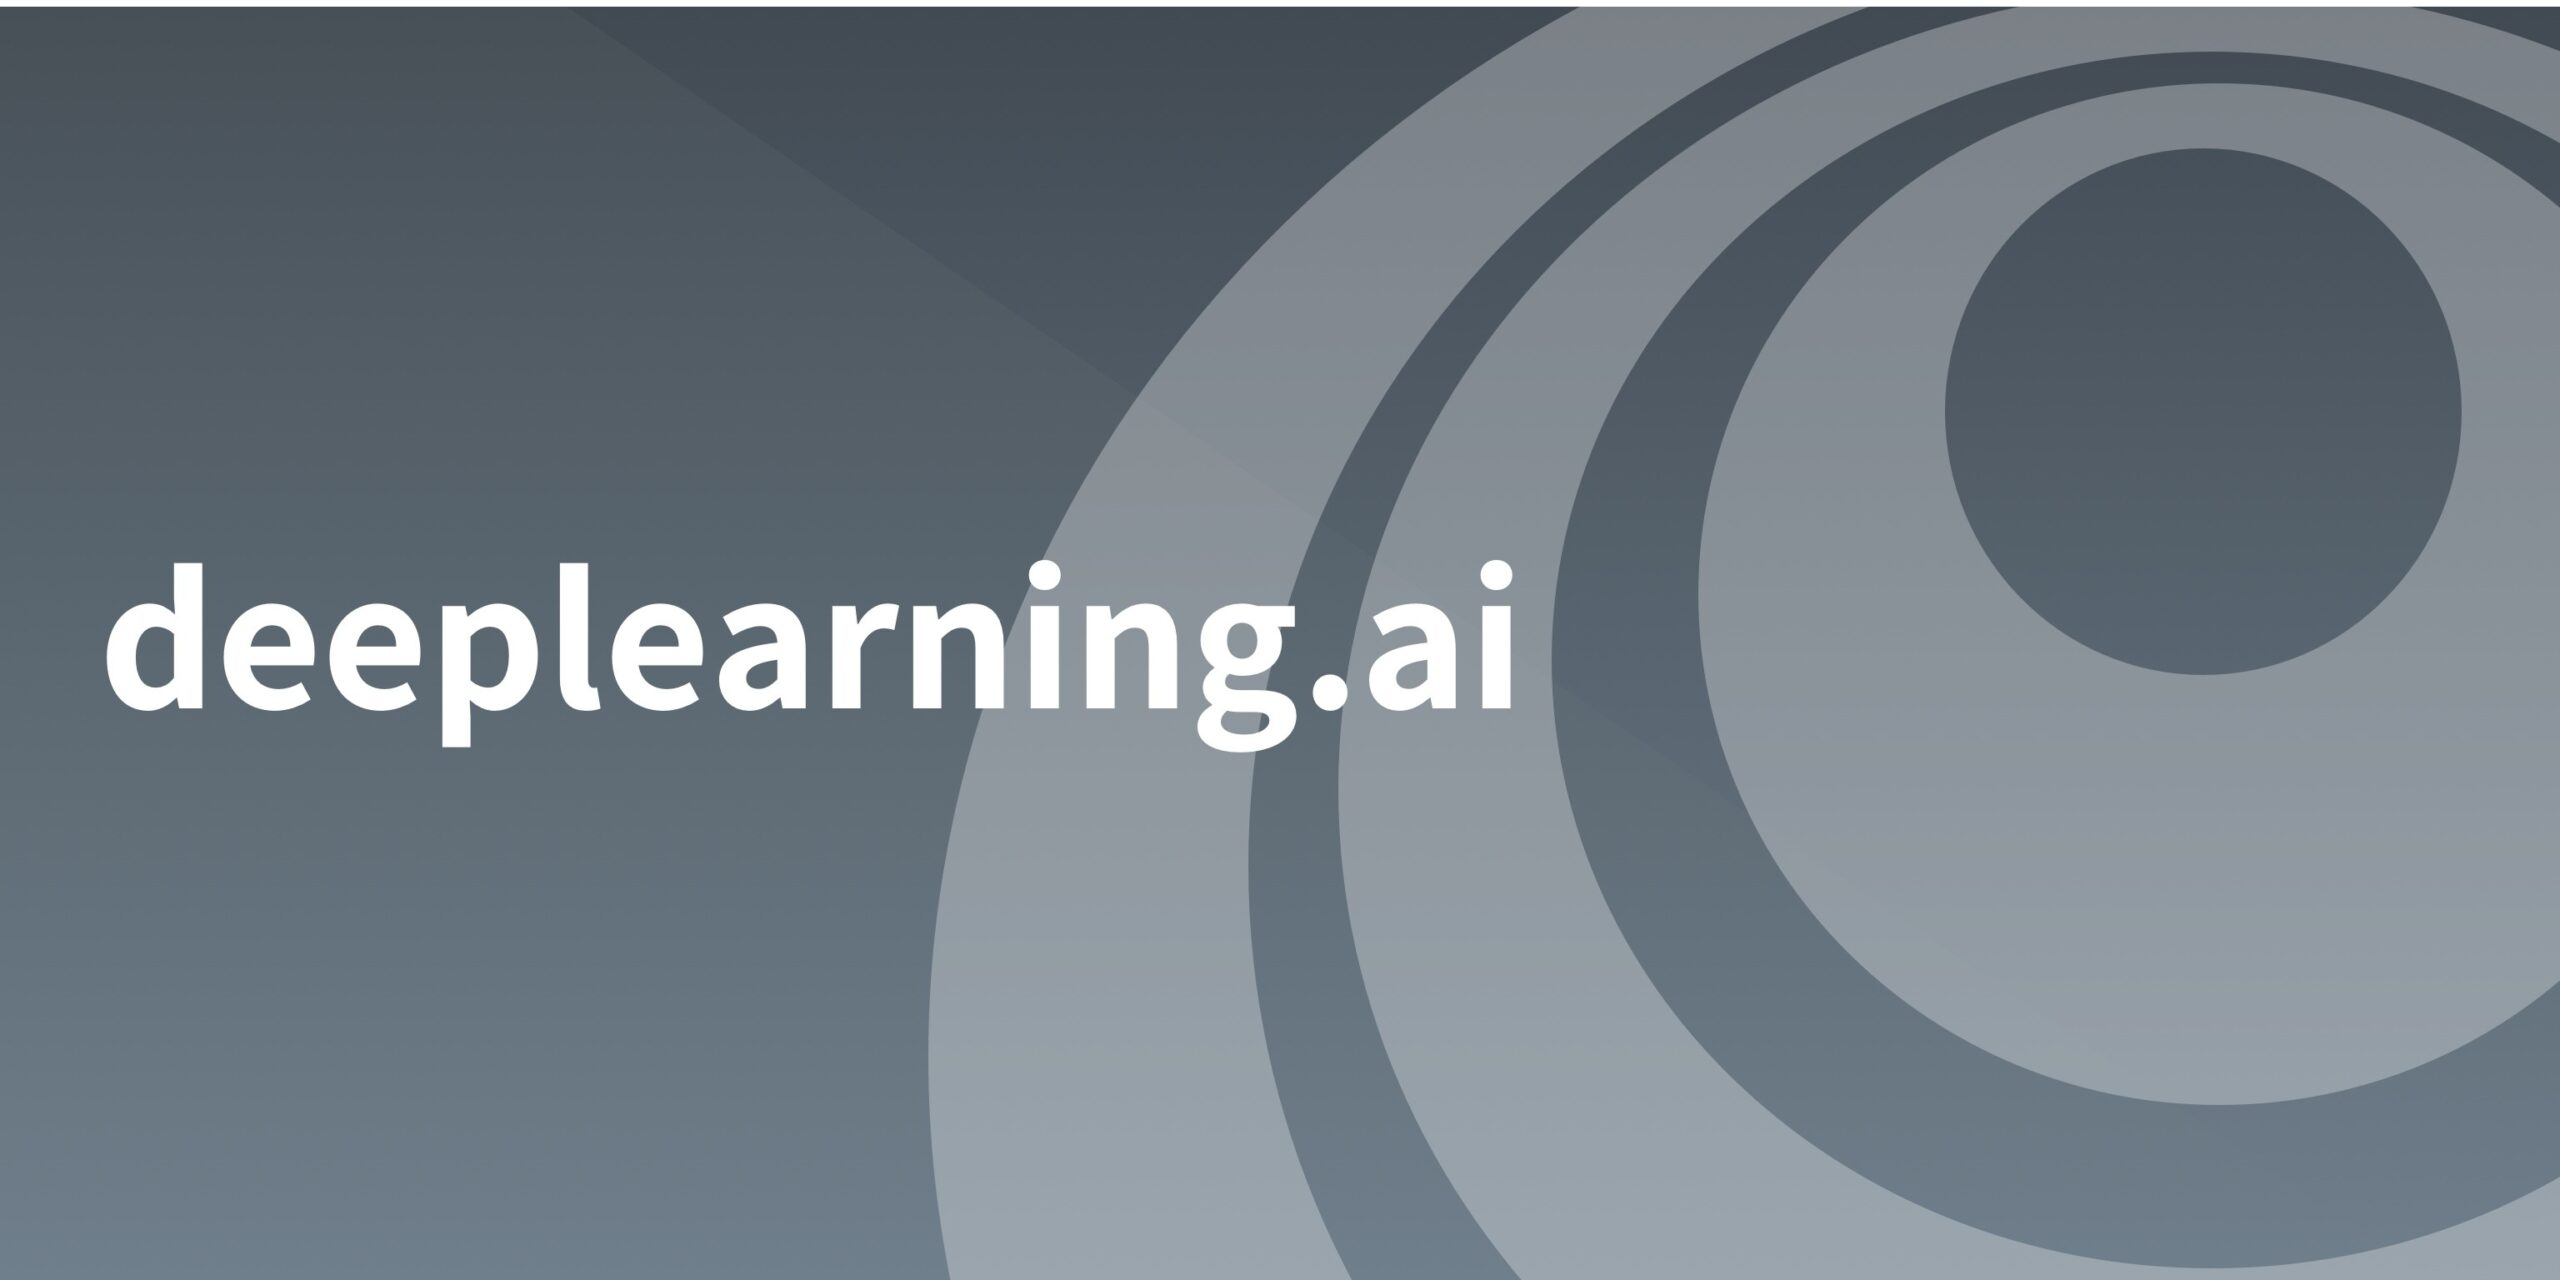 Best Coursera courses for Data Science and Machine Learning - AI For Everyone Course